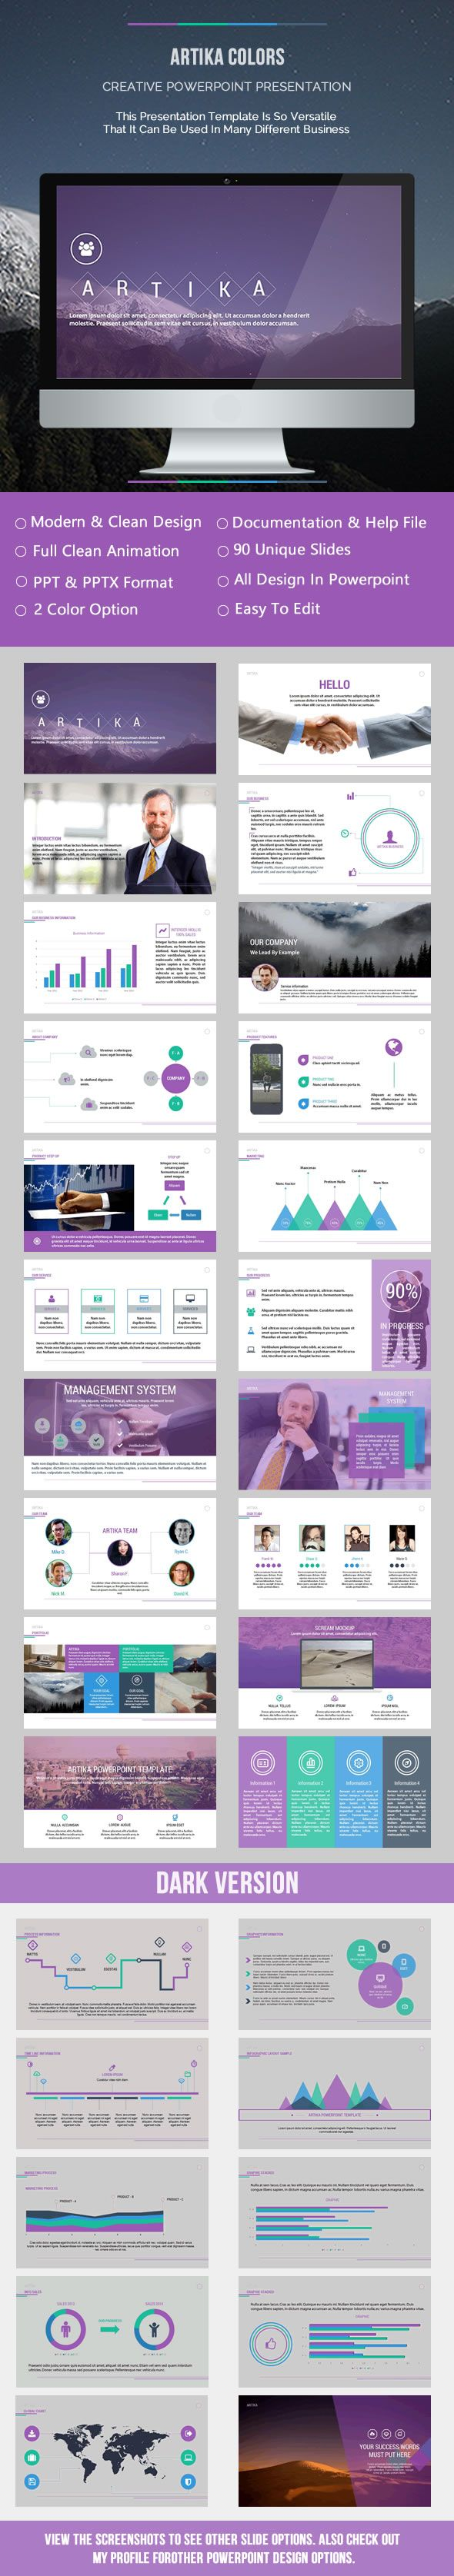 Artika Colors Presentation - Business Powerpoint Templates